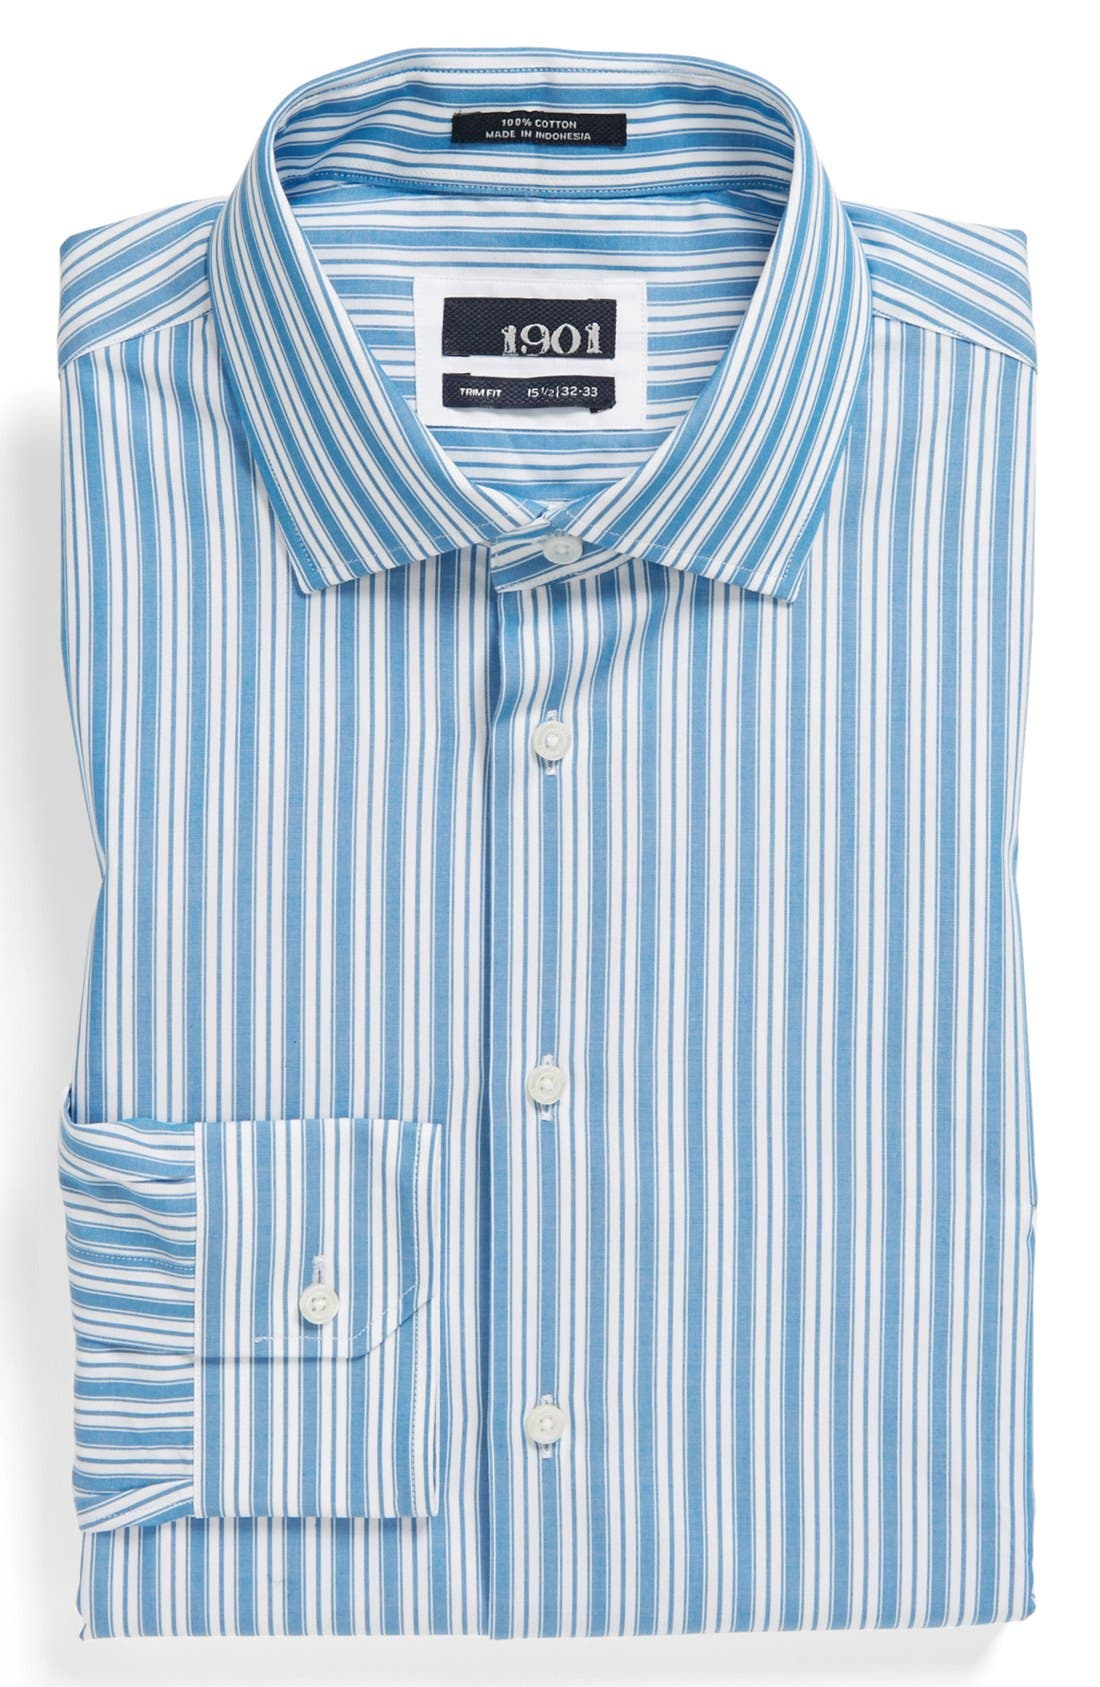 Alternate Image 1 Selected - 1901 Trim Fit Stripe Dress Shirt